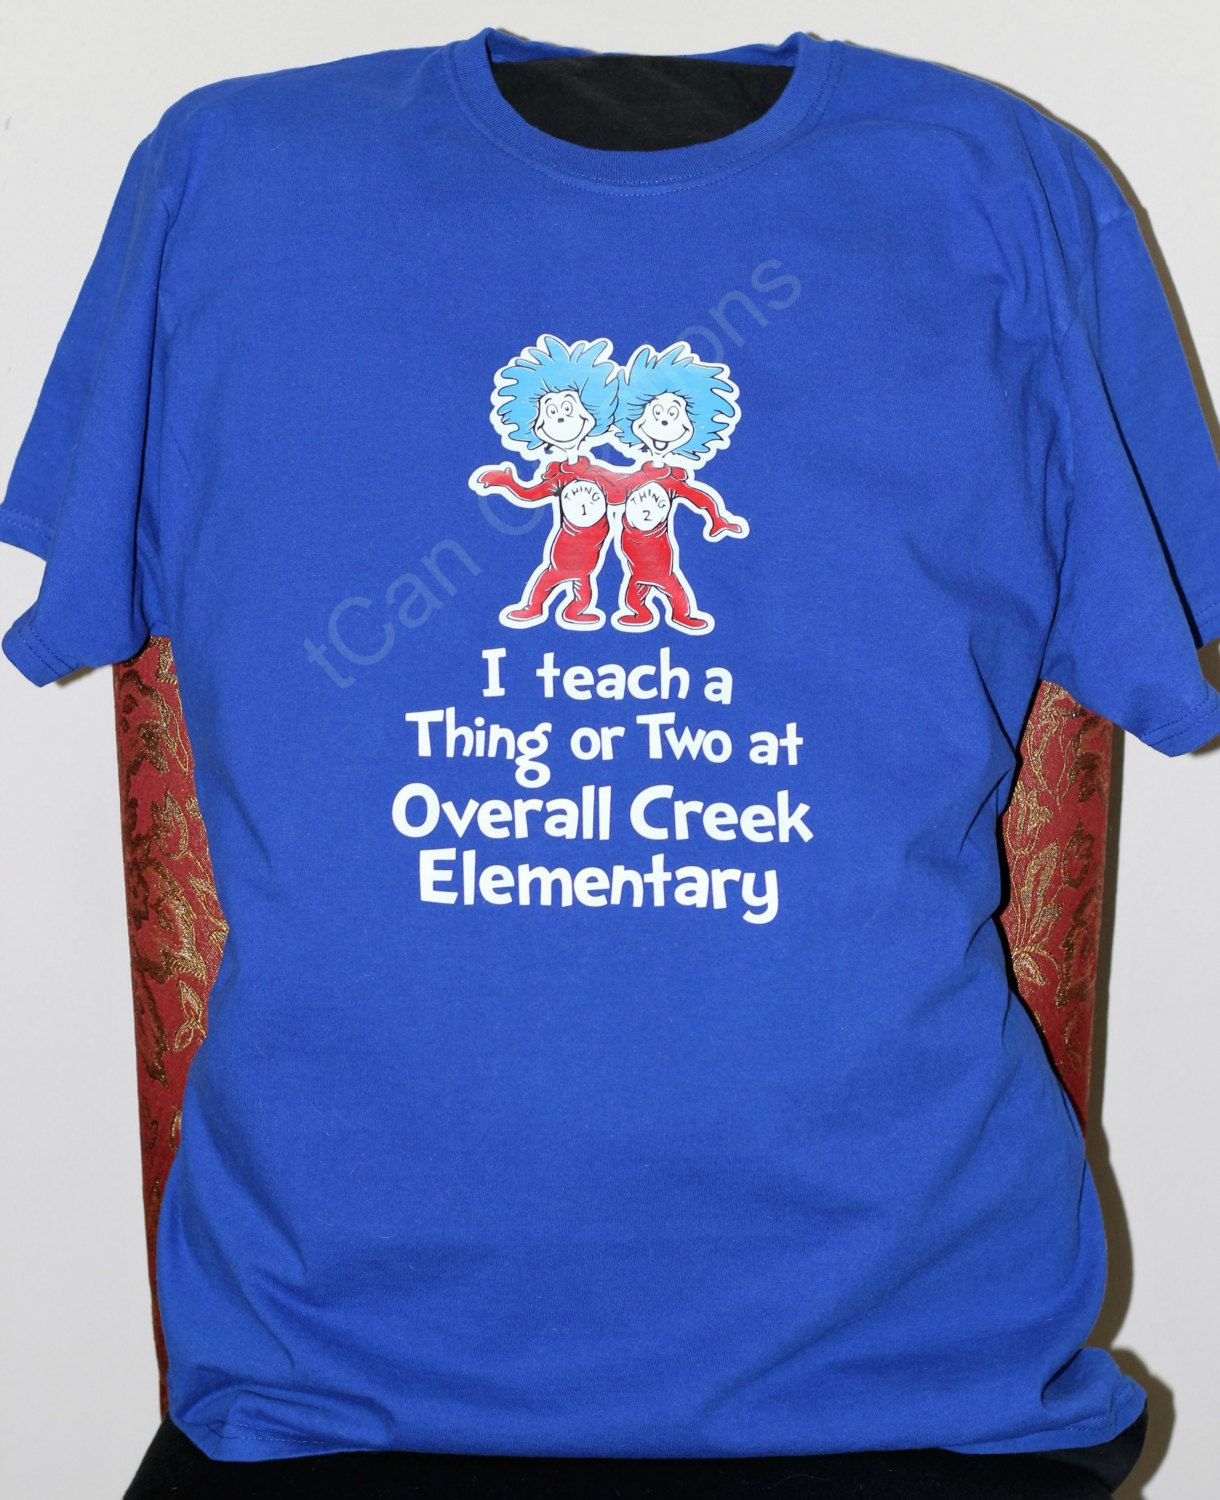 I Teach a Thing or Two, Teacher Appreciation, end of year gift, Dr Seuss inspired t-shirt customized with YOUR school name by tCanCreations on Etsy